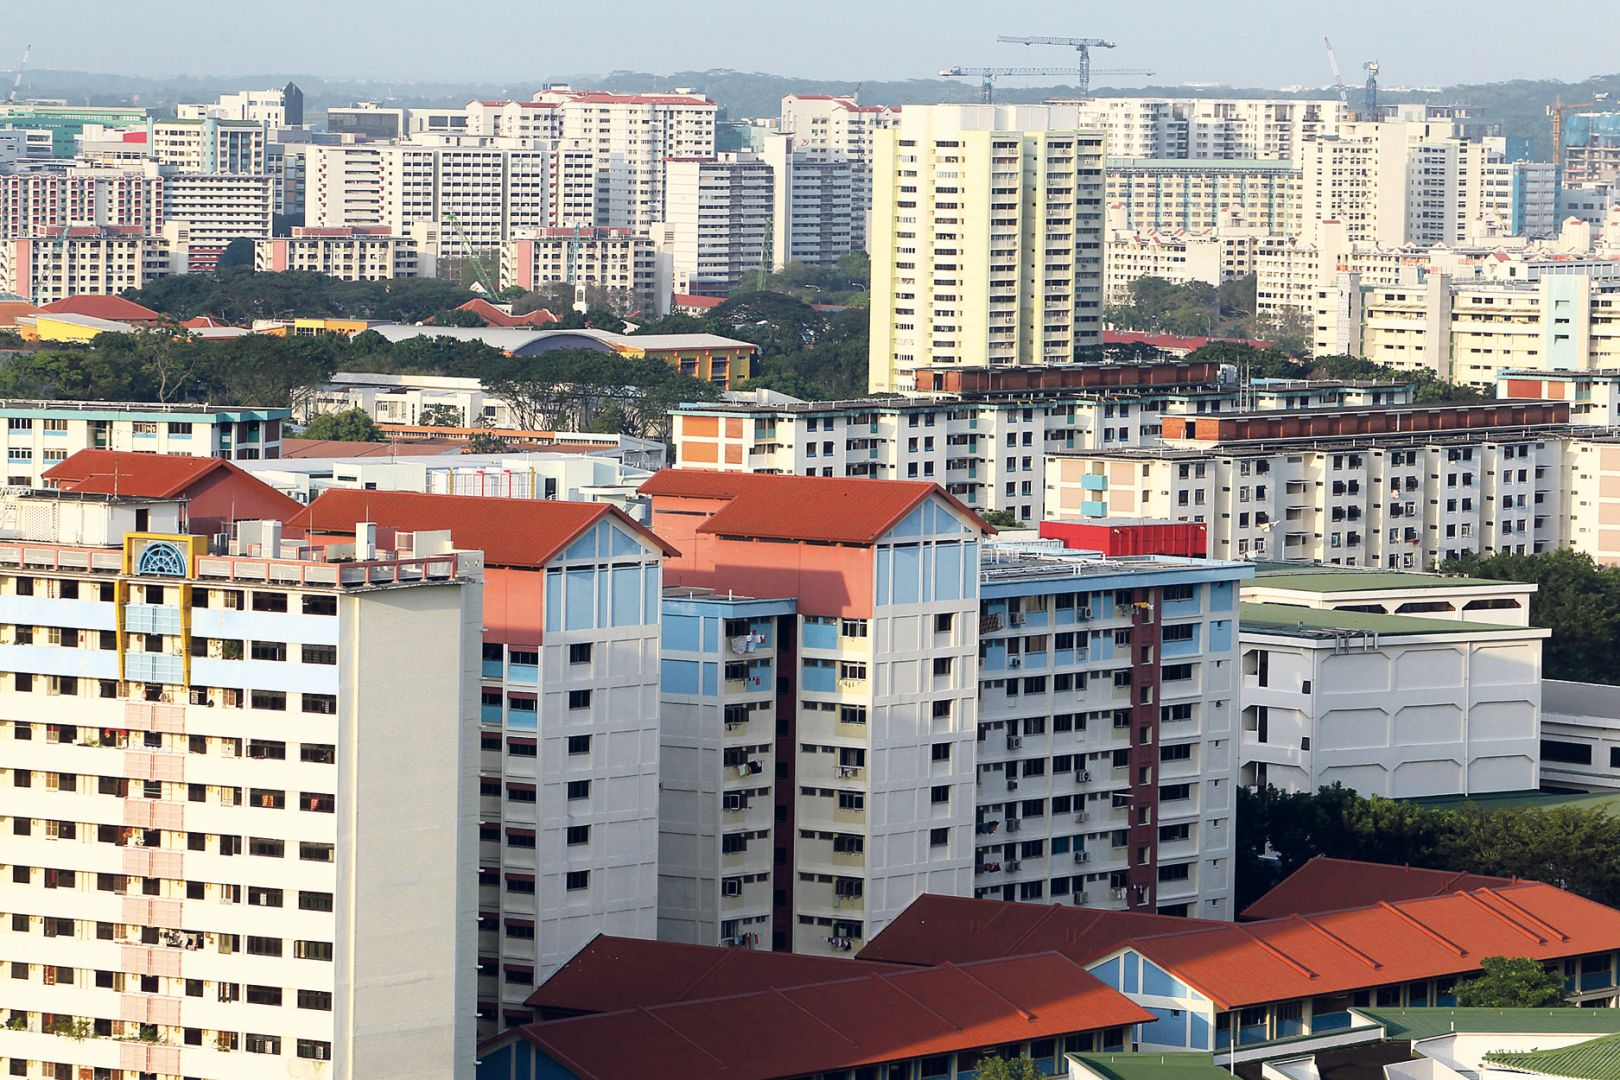 Singapore is just one of the many countries to have implemented cooling measures to regulate their property markets